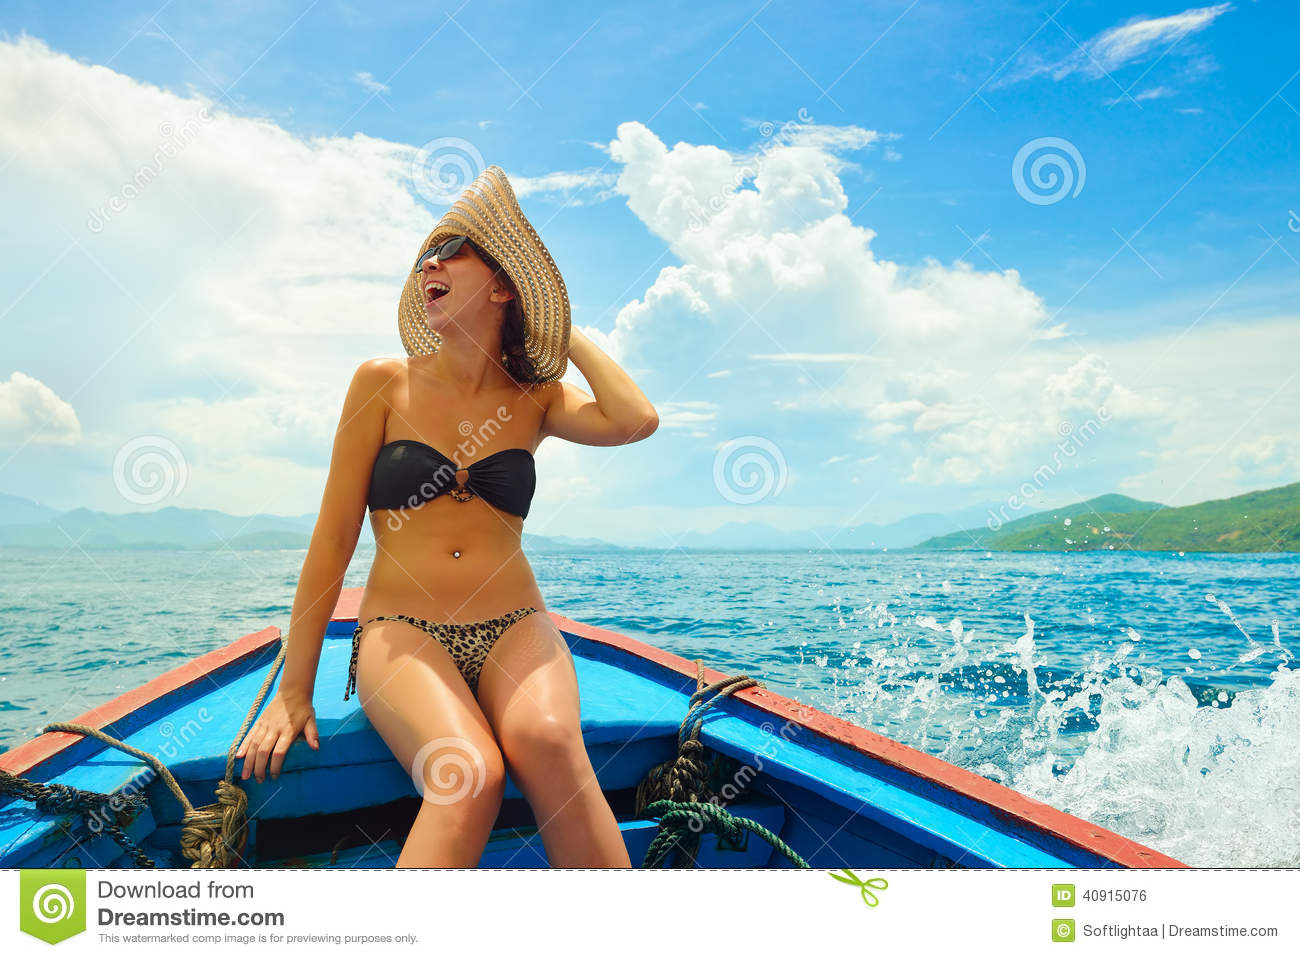 Likely... sexy girl on boat wallpaper consider